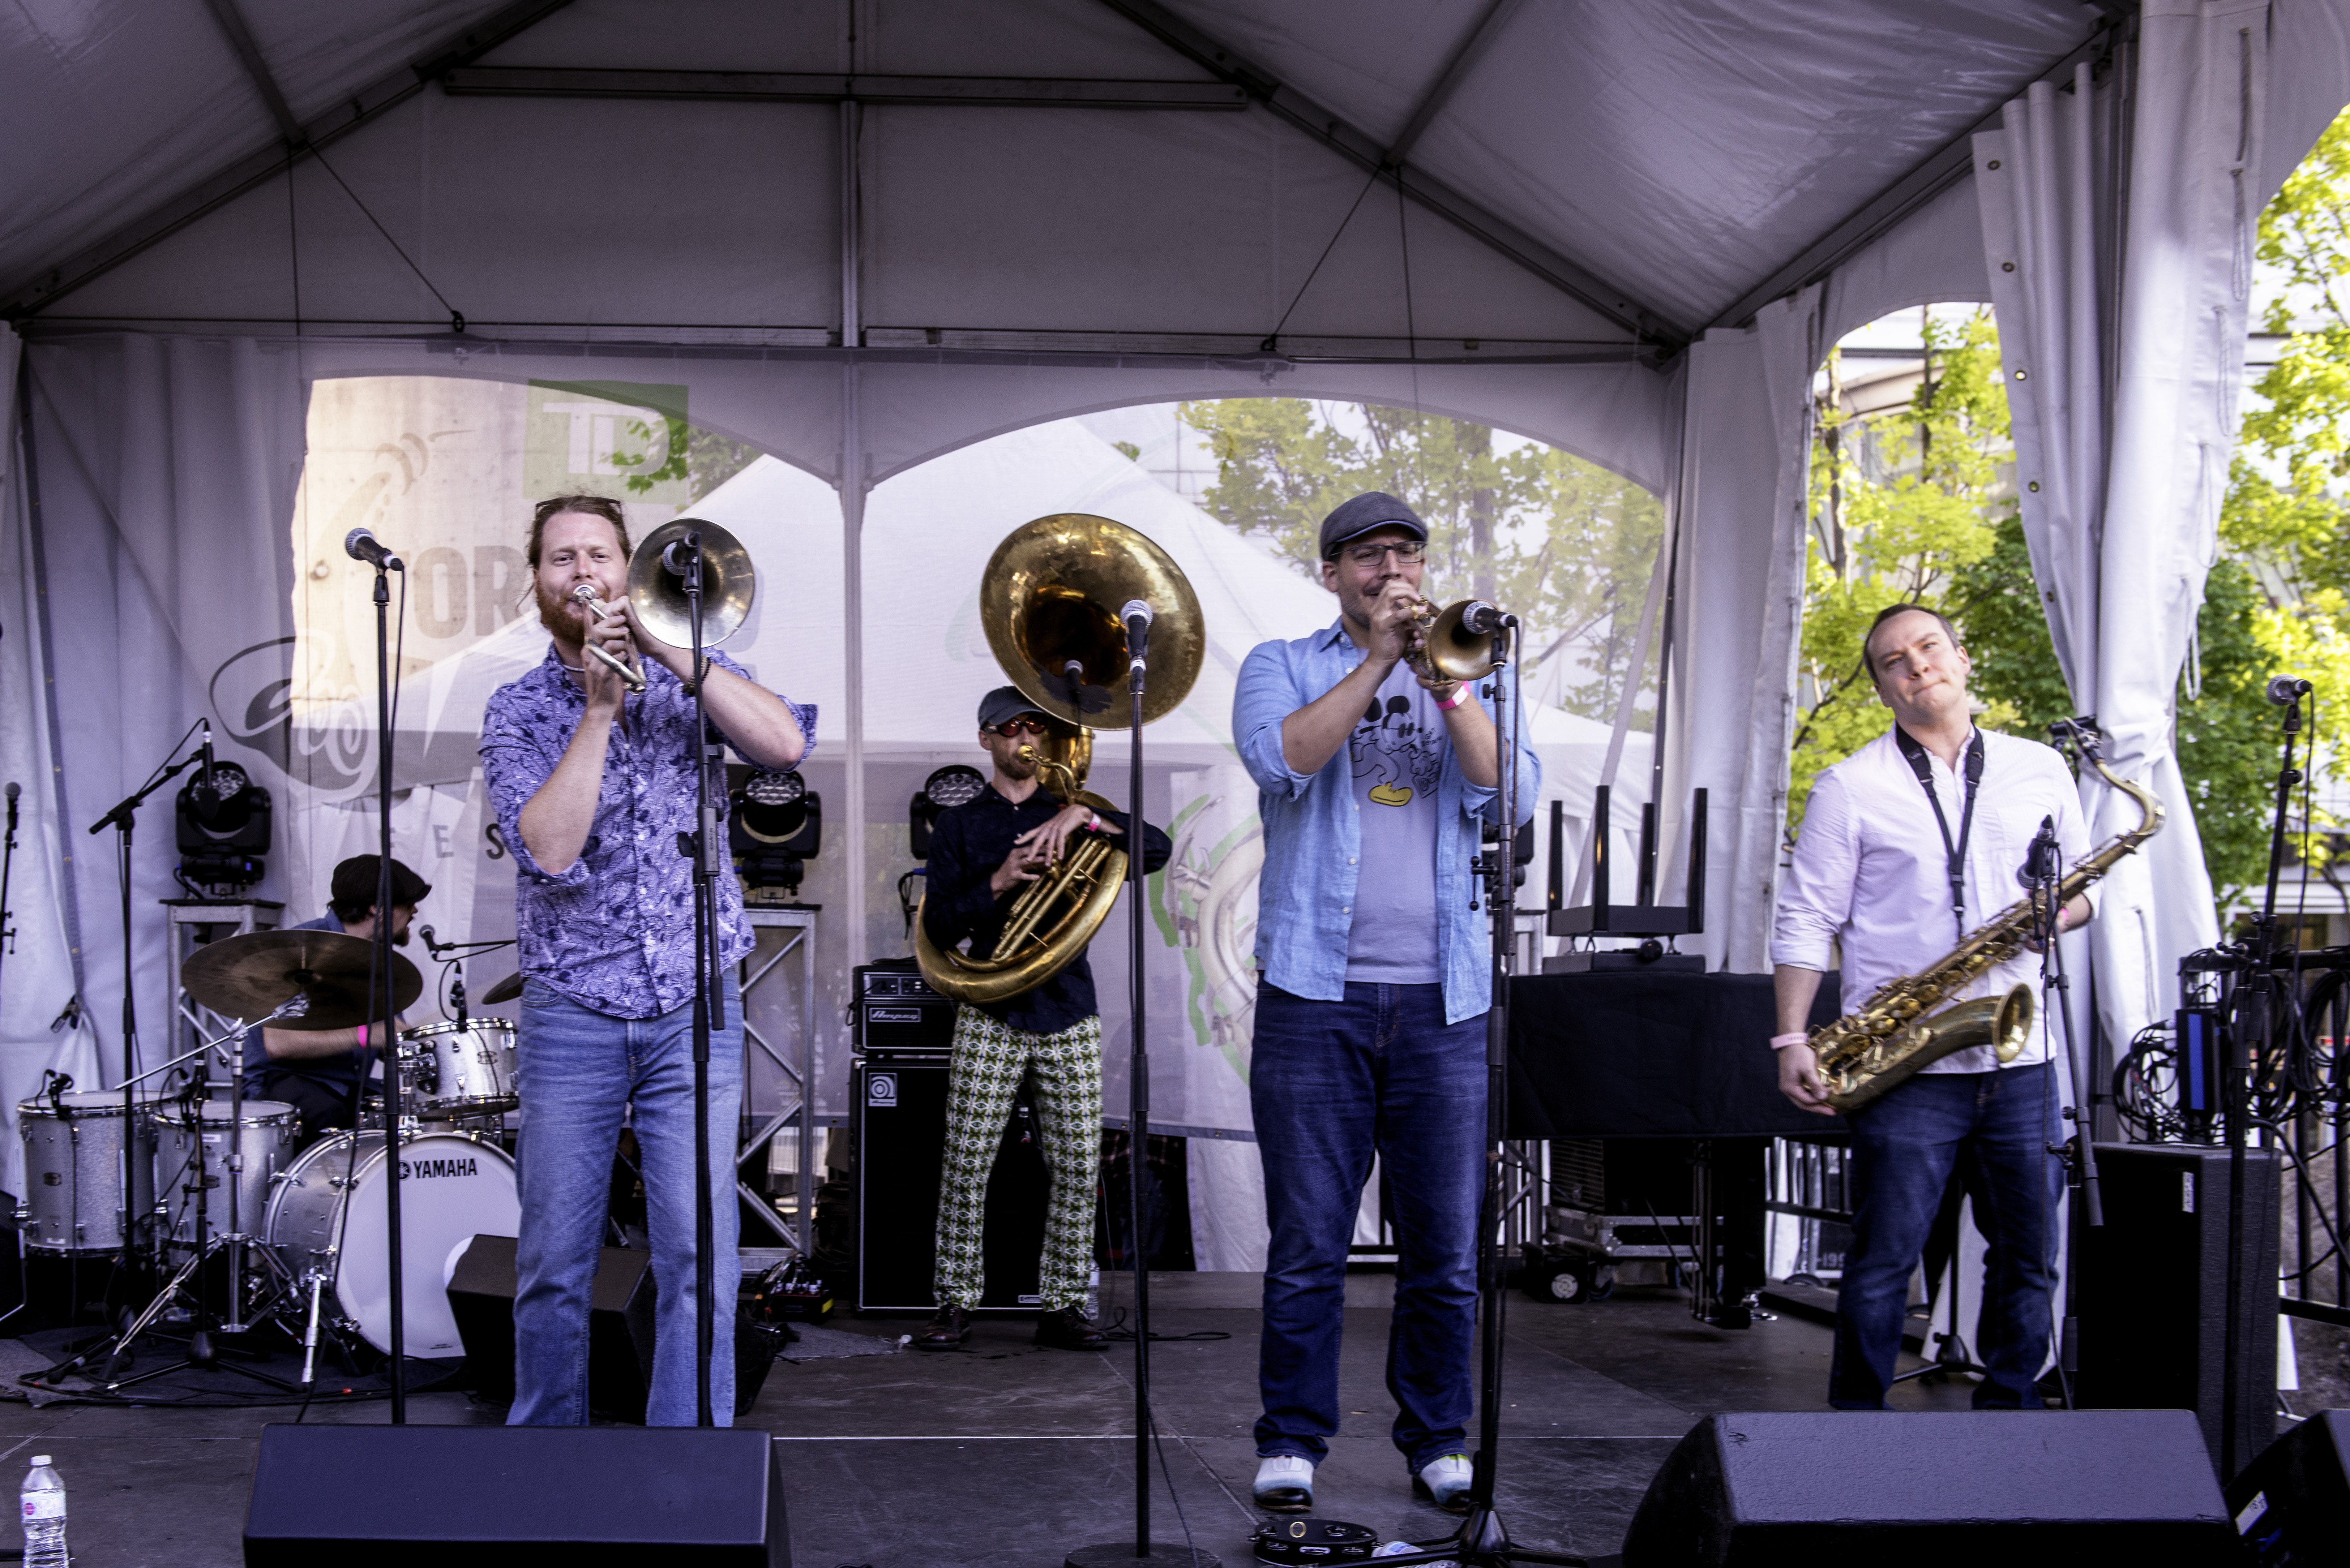 Chris Butcher, John Pittman, Paul Metcalfe, Tom Richards and Lowell Whitty with the Heavyweight Brass Band at the Toronto Jazz Festival 2019